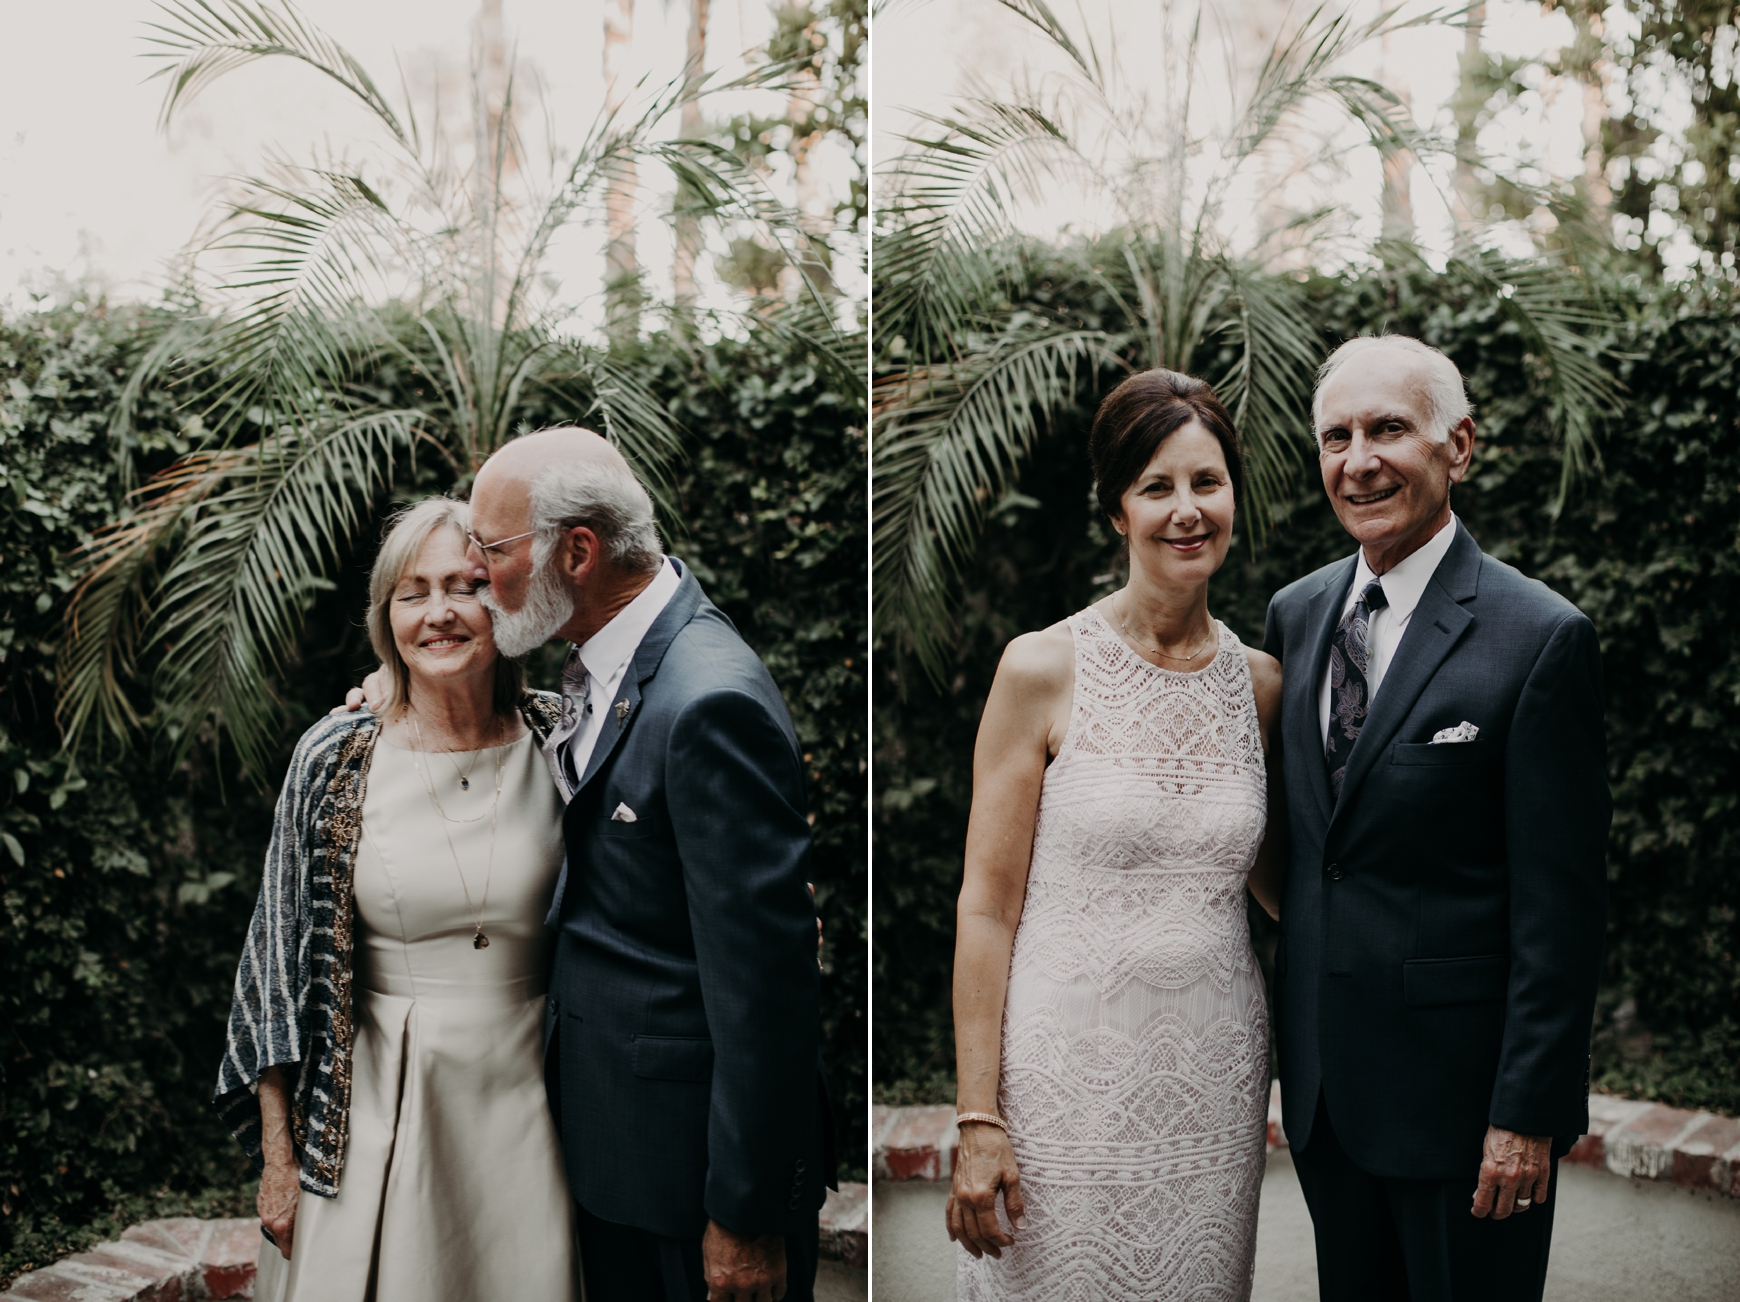 The Colony Palms Hotel Palm Springs Wedding Jaclyn & Tyson Emily Magers Photography-309.jpg